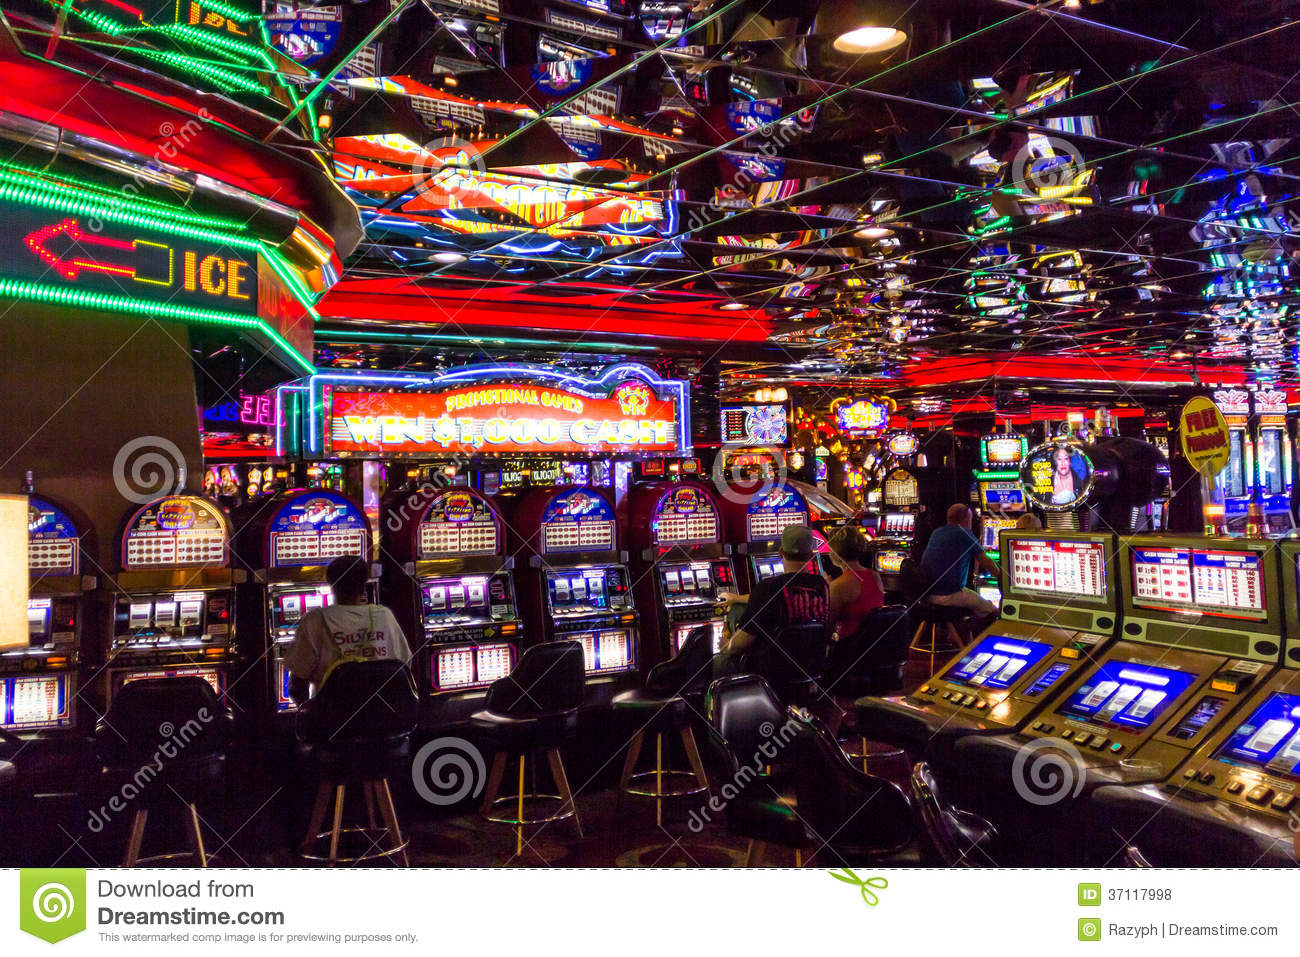 what is the best casino in las vegas for slots